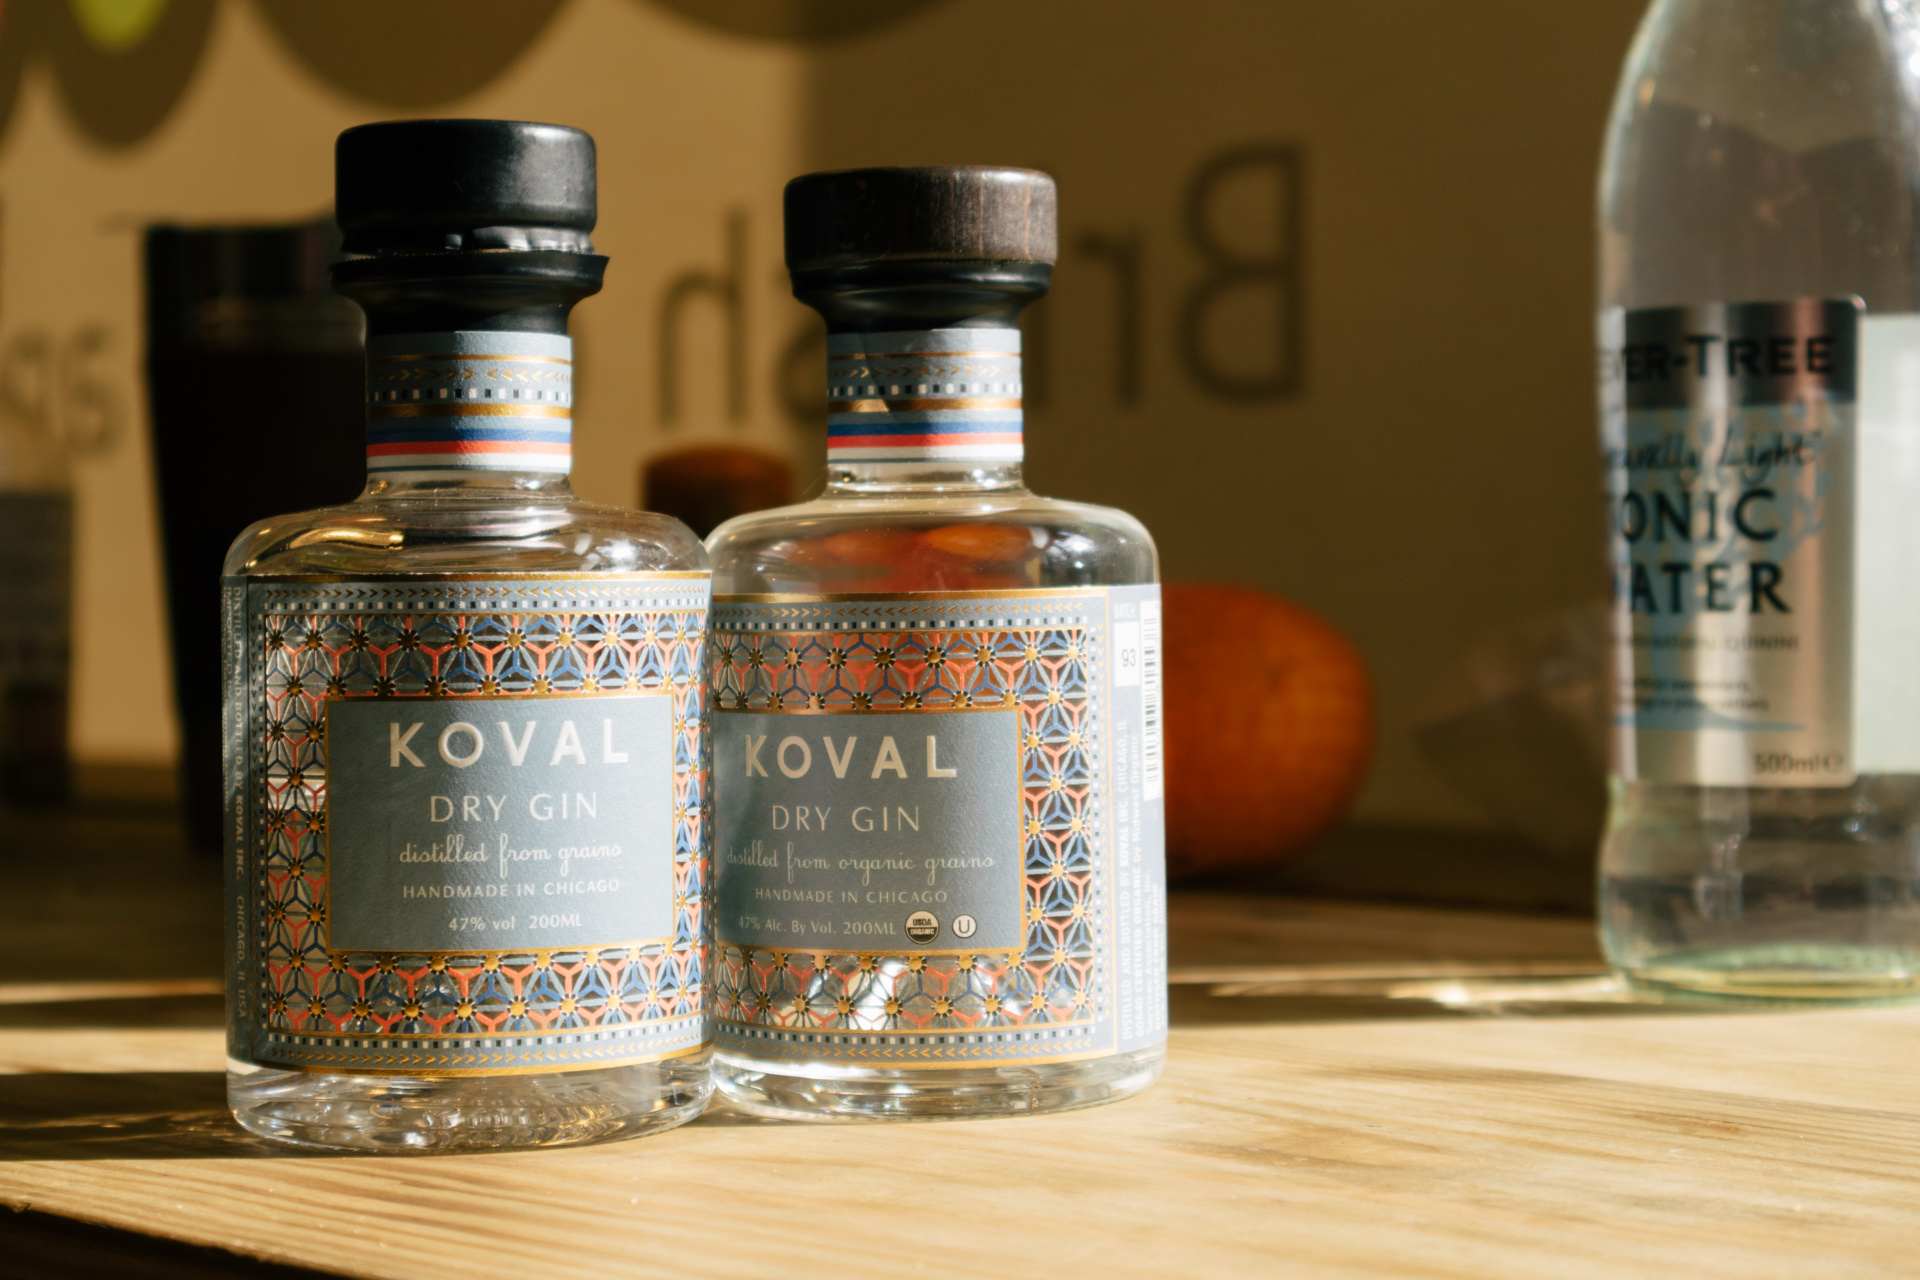 Photograph of two Koval alcohol bottles, with tonic water in the background. Produced by Barefaced Studios, design agency based in Islington, North London.